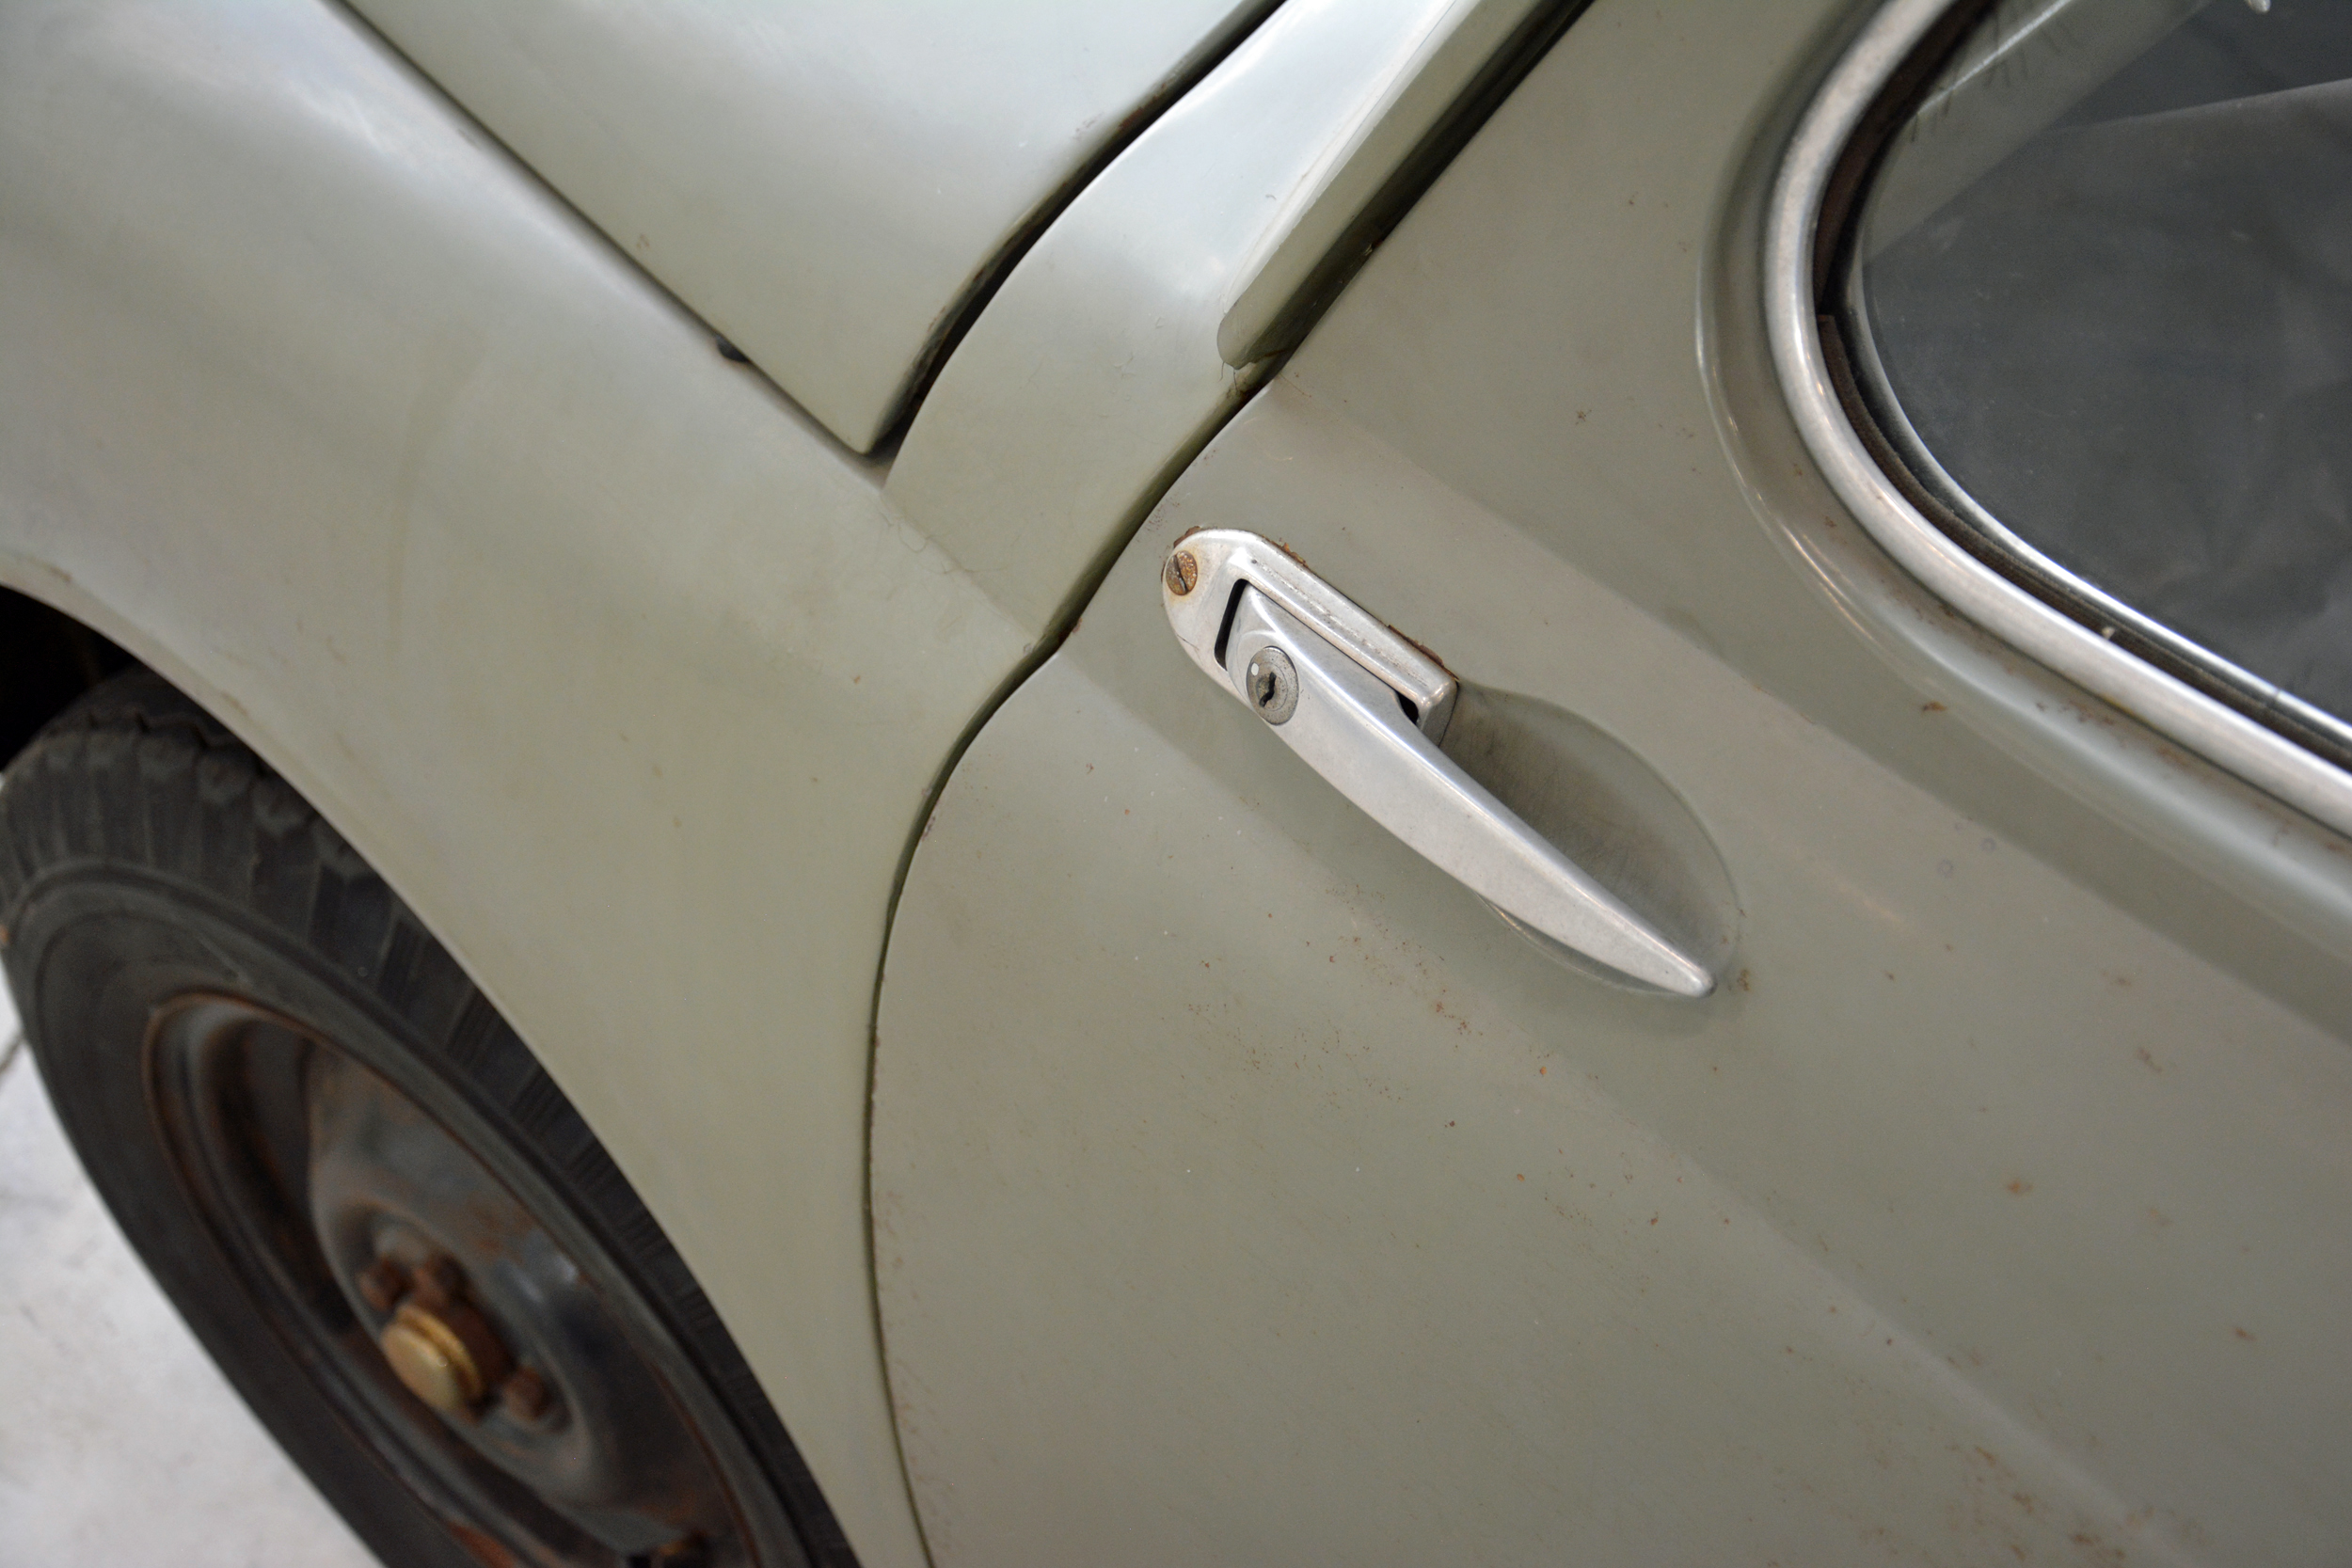 1951 fiat 100 prototype door handle